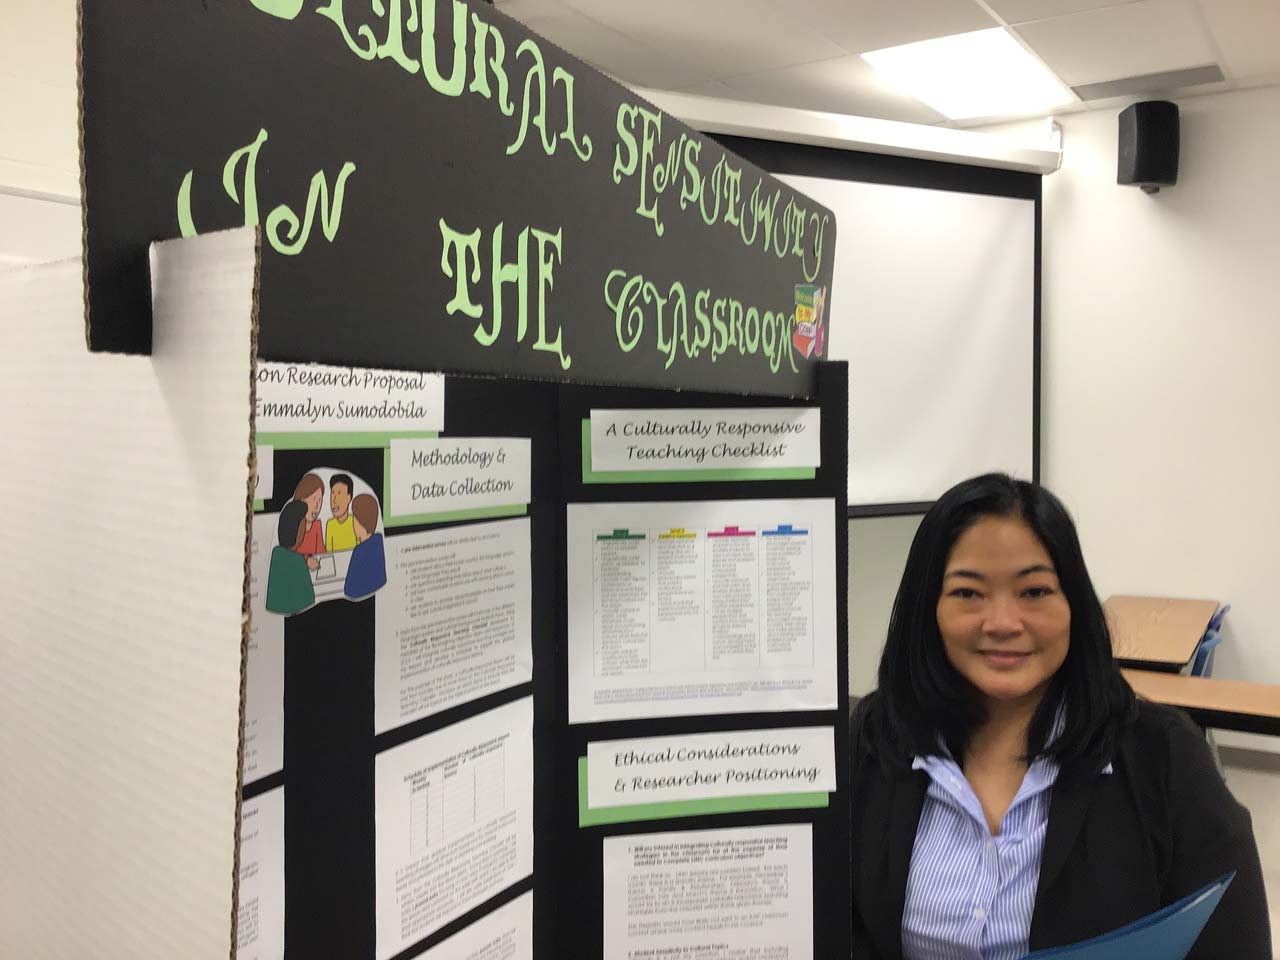 A woman (Emmalyn) smiling and standing next to a presentation board